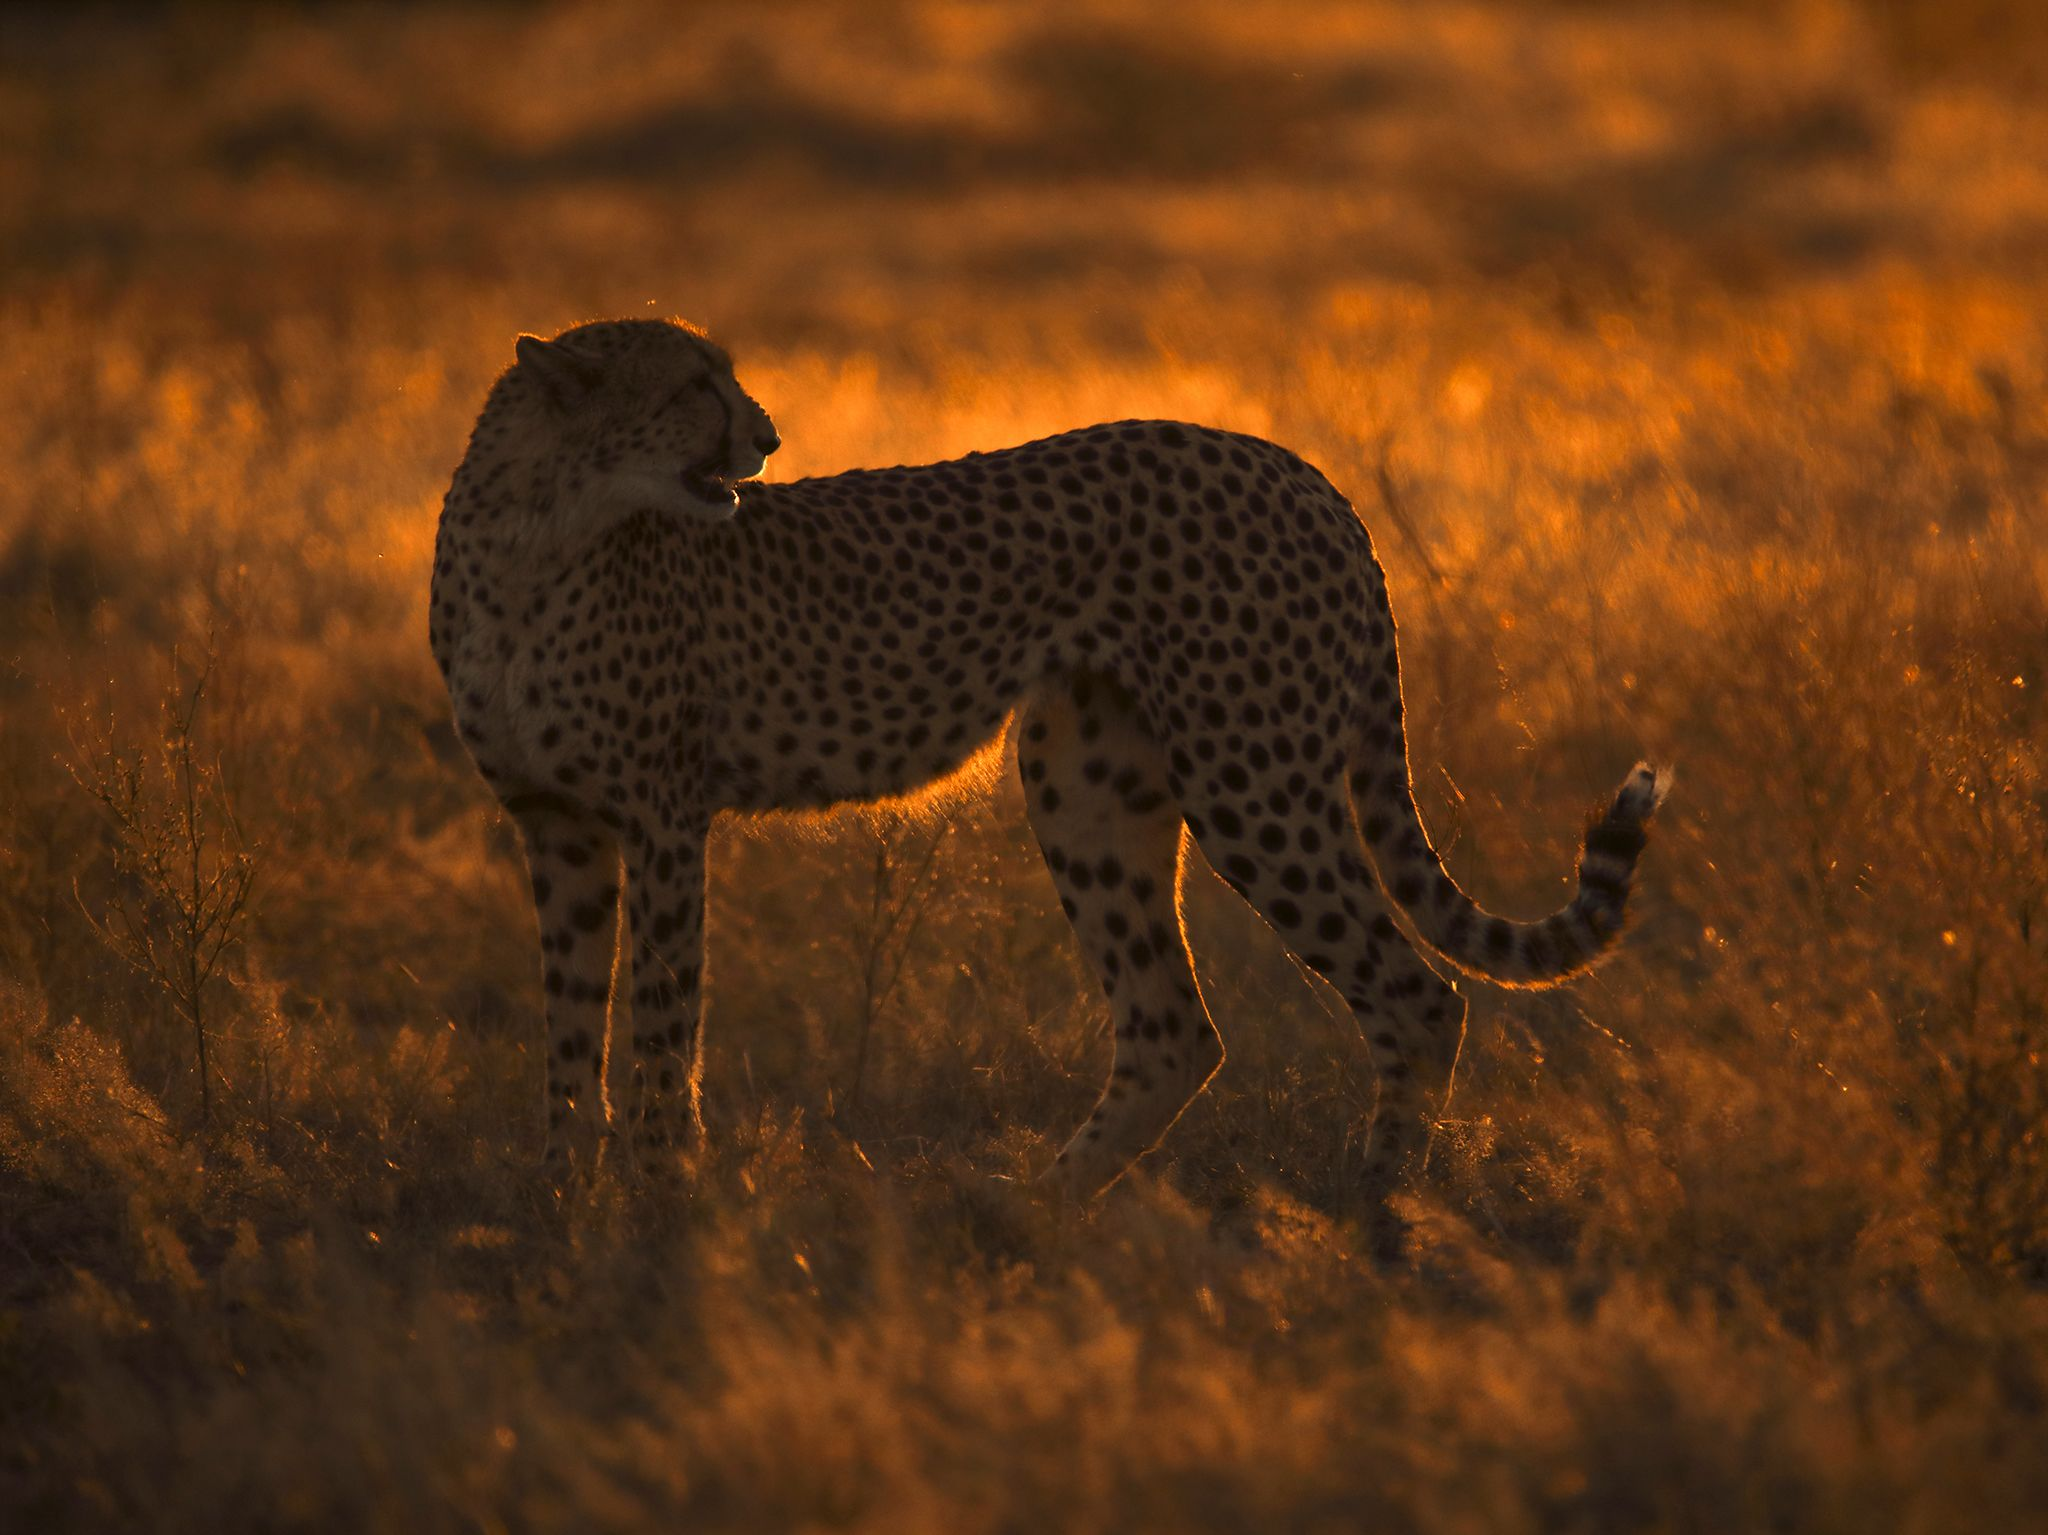 Okavango Delta, Botswana:  Mother Cheetah, silhouetted in the early morning sunrise, calls out... [Photo of the day - June 2020]